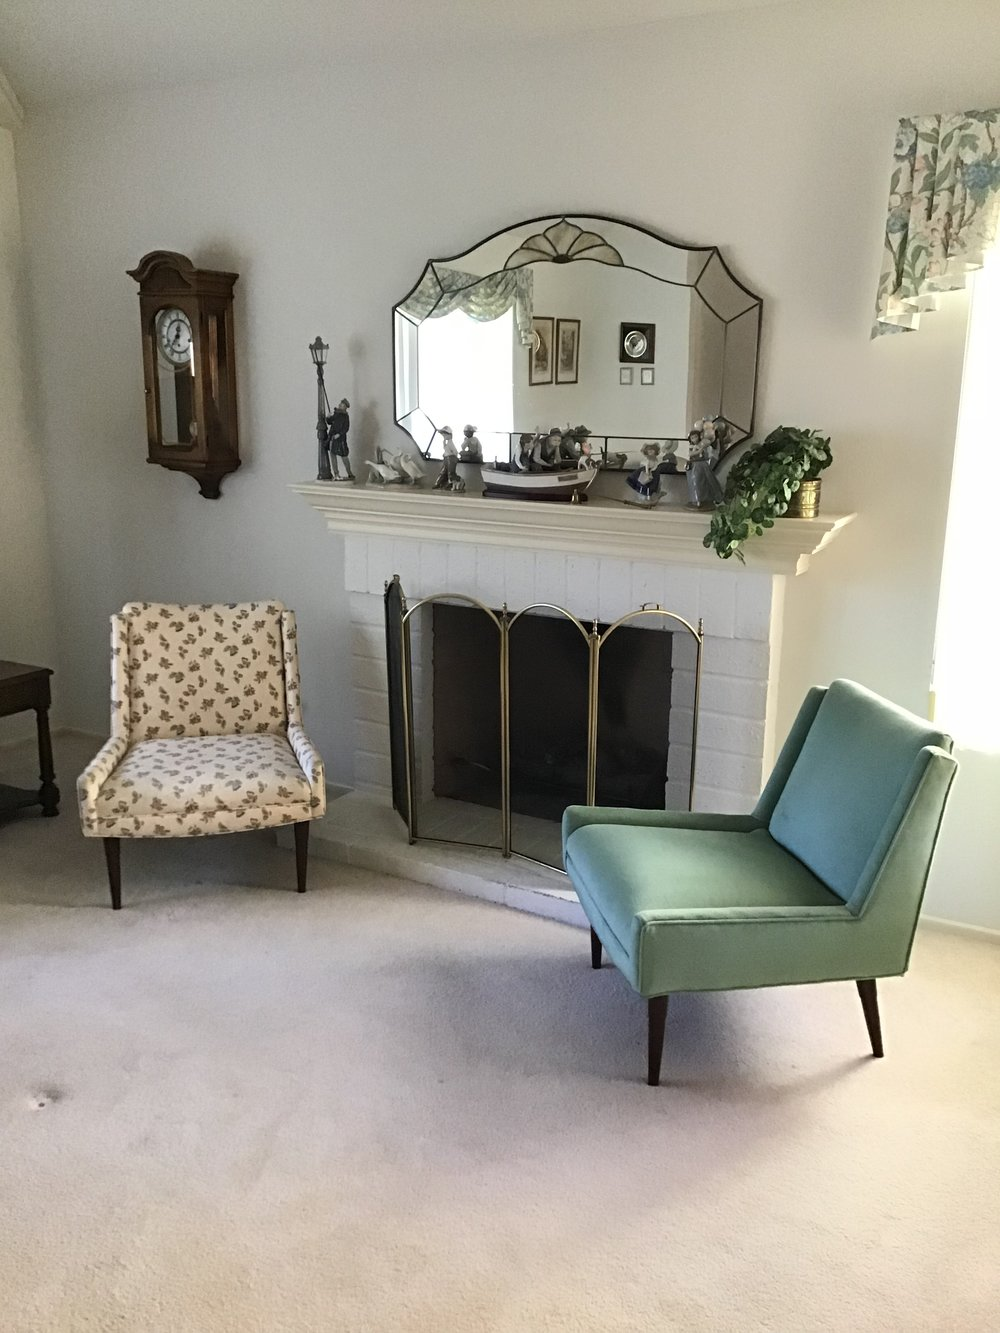 Escondido Estate Sale - Description: Beautiful home on golf course in Escondido. Packed with furniture, mid-century chairs, office desks, bookshelves, clothes and shoes galore. Liadro figurines, art work, brand new Cuisinart food processor, tools & more.